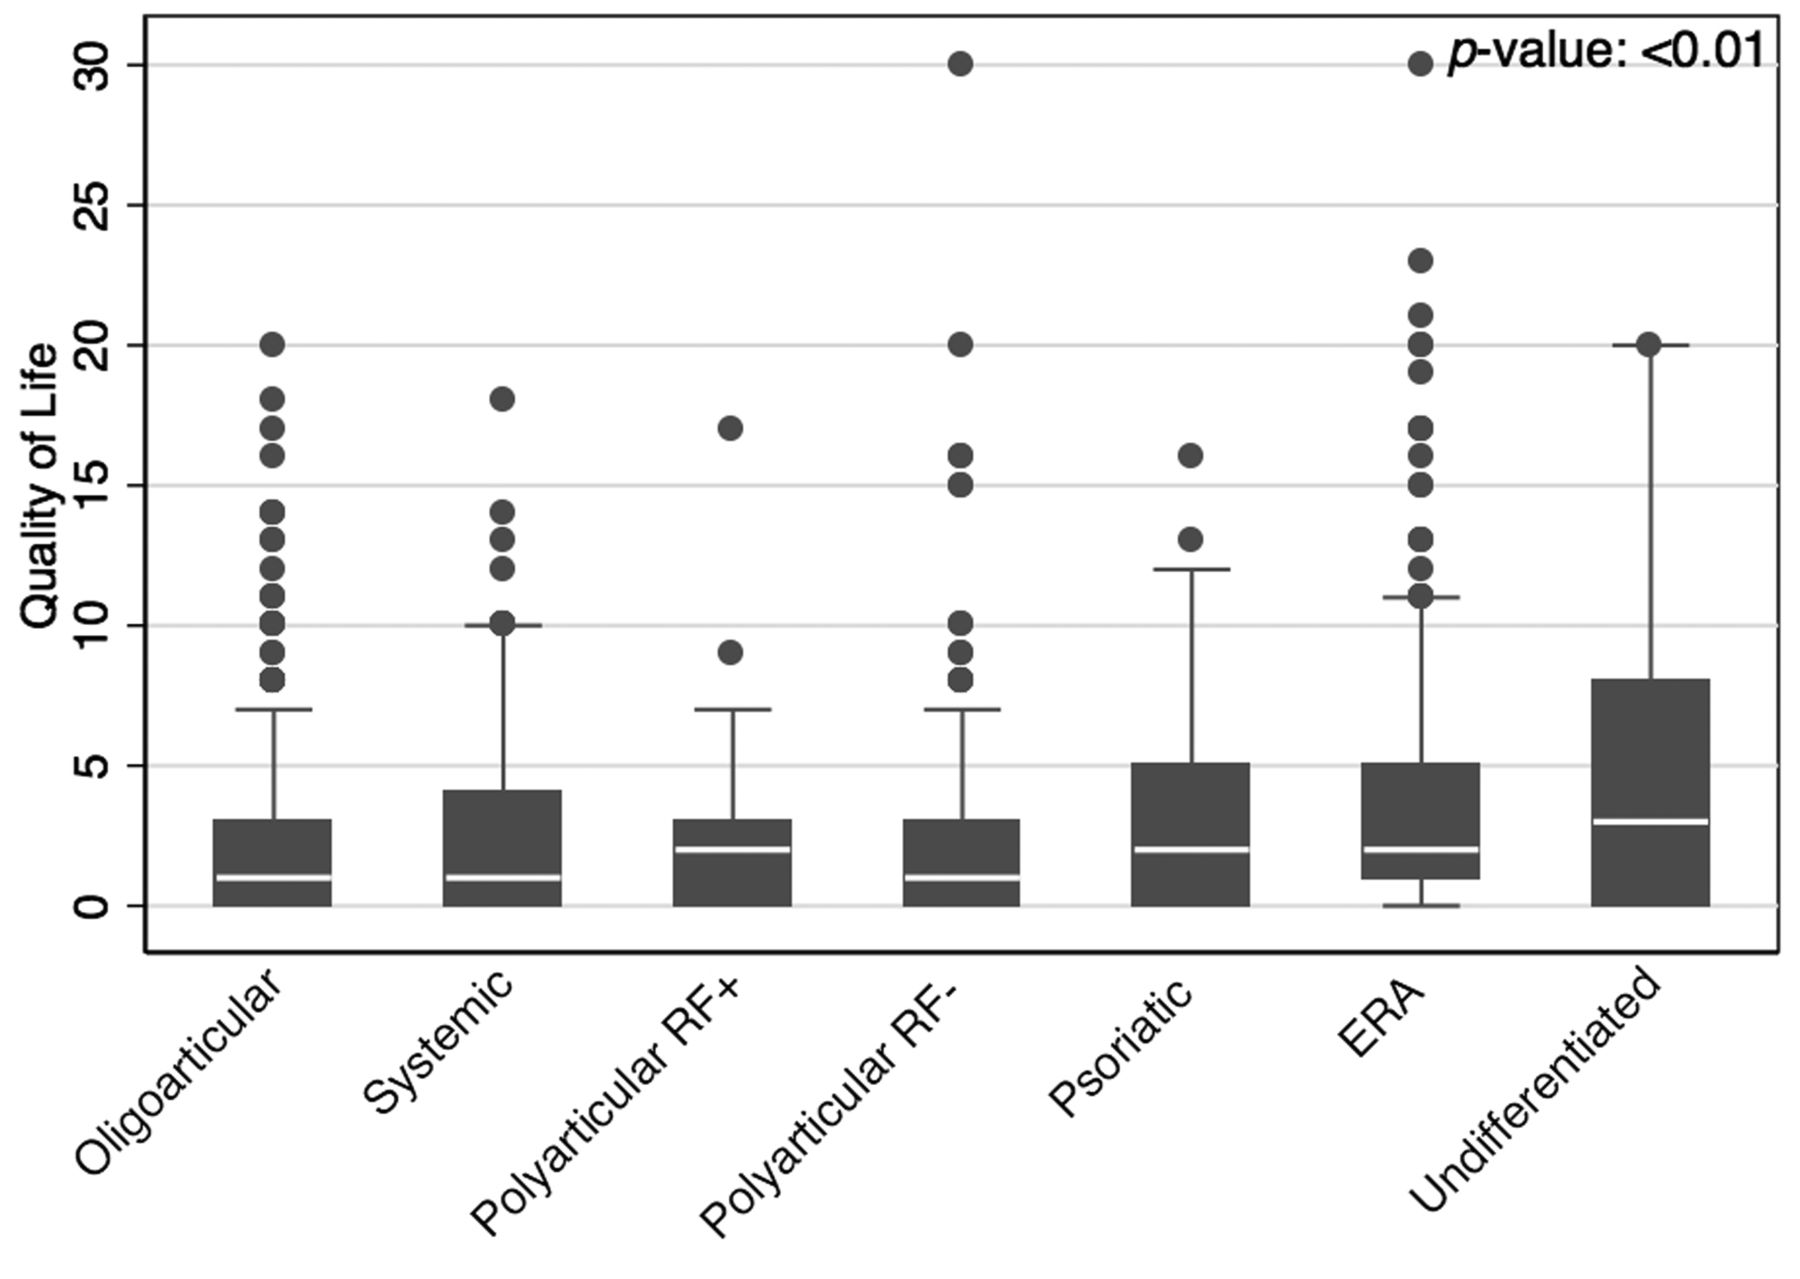 Patient-reported Outcomes across Categories of Juvenile Idiopathic